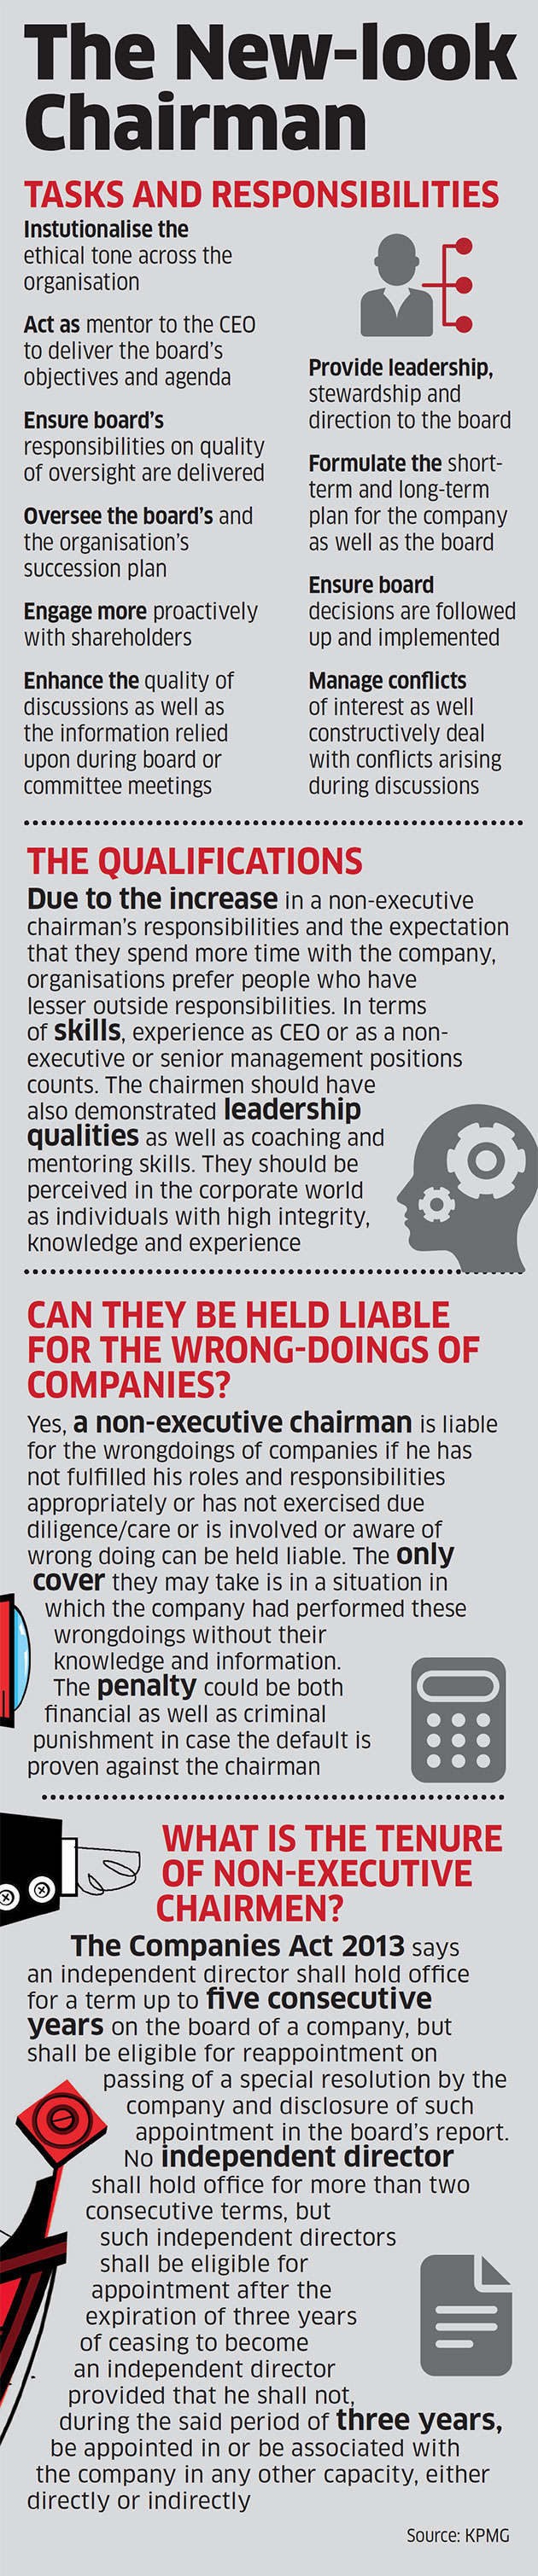 From yes-man to coach, companies turn to non-executive chairmen to tide over difficult times